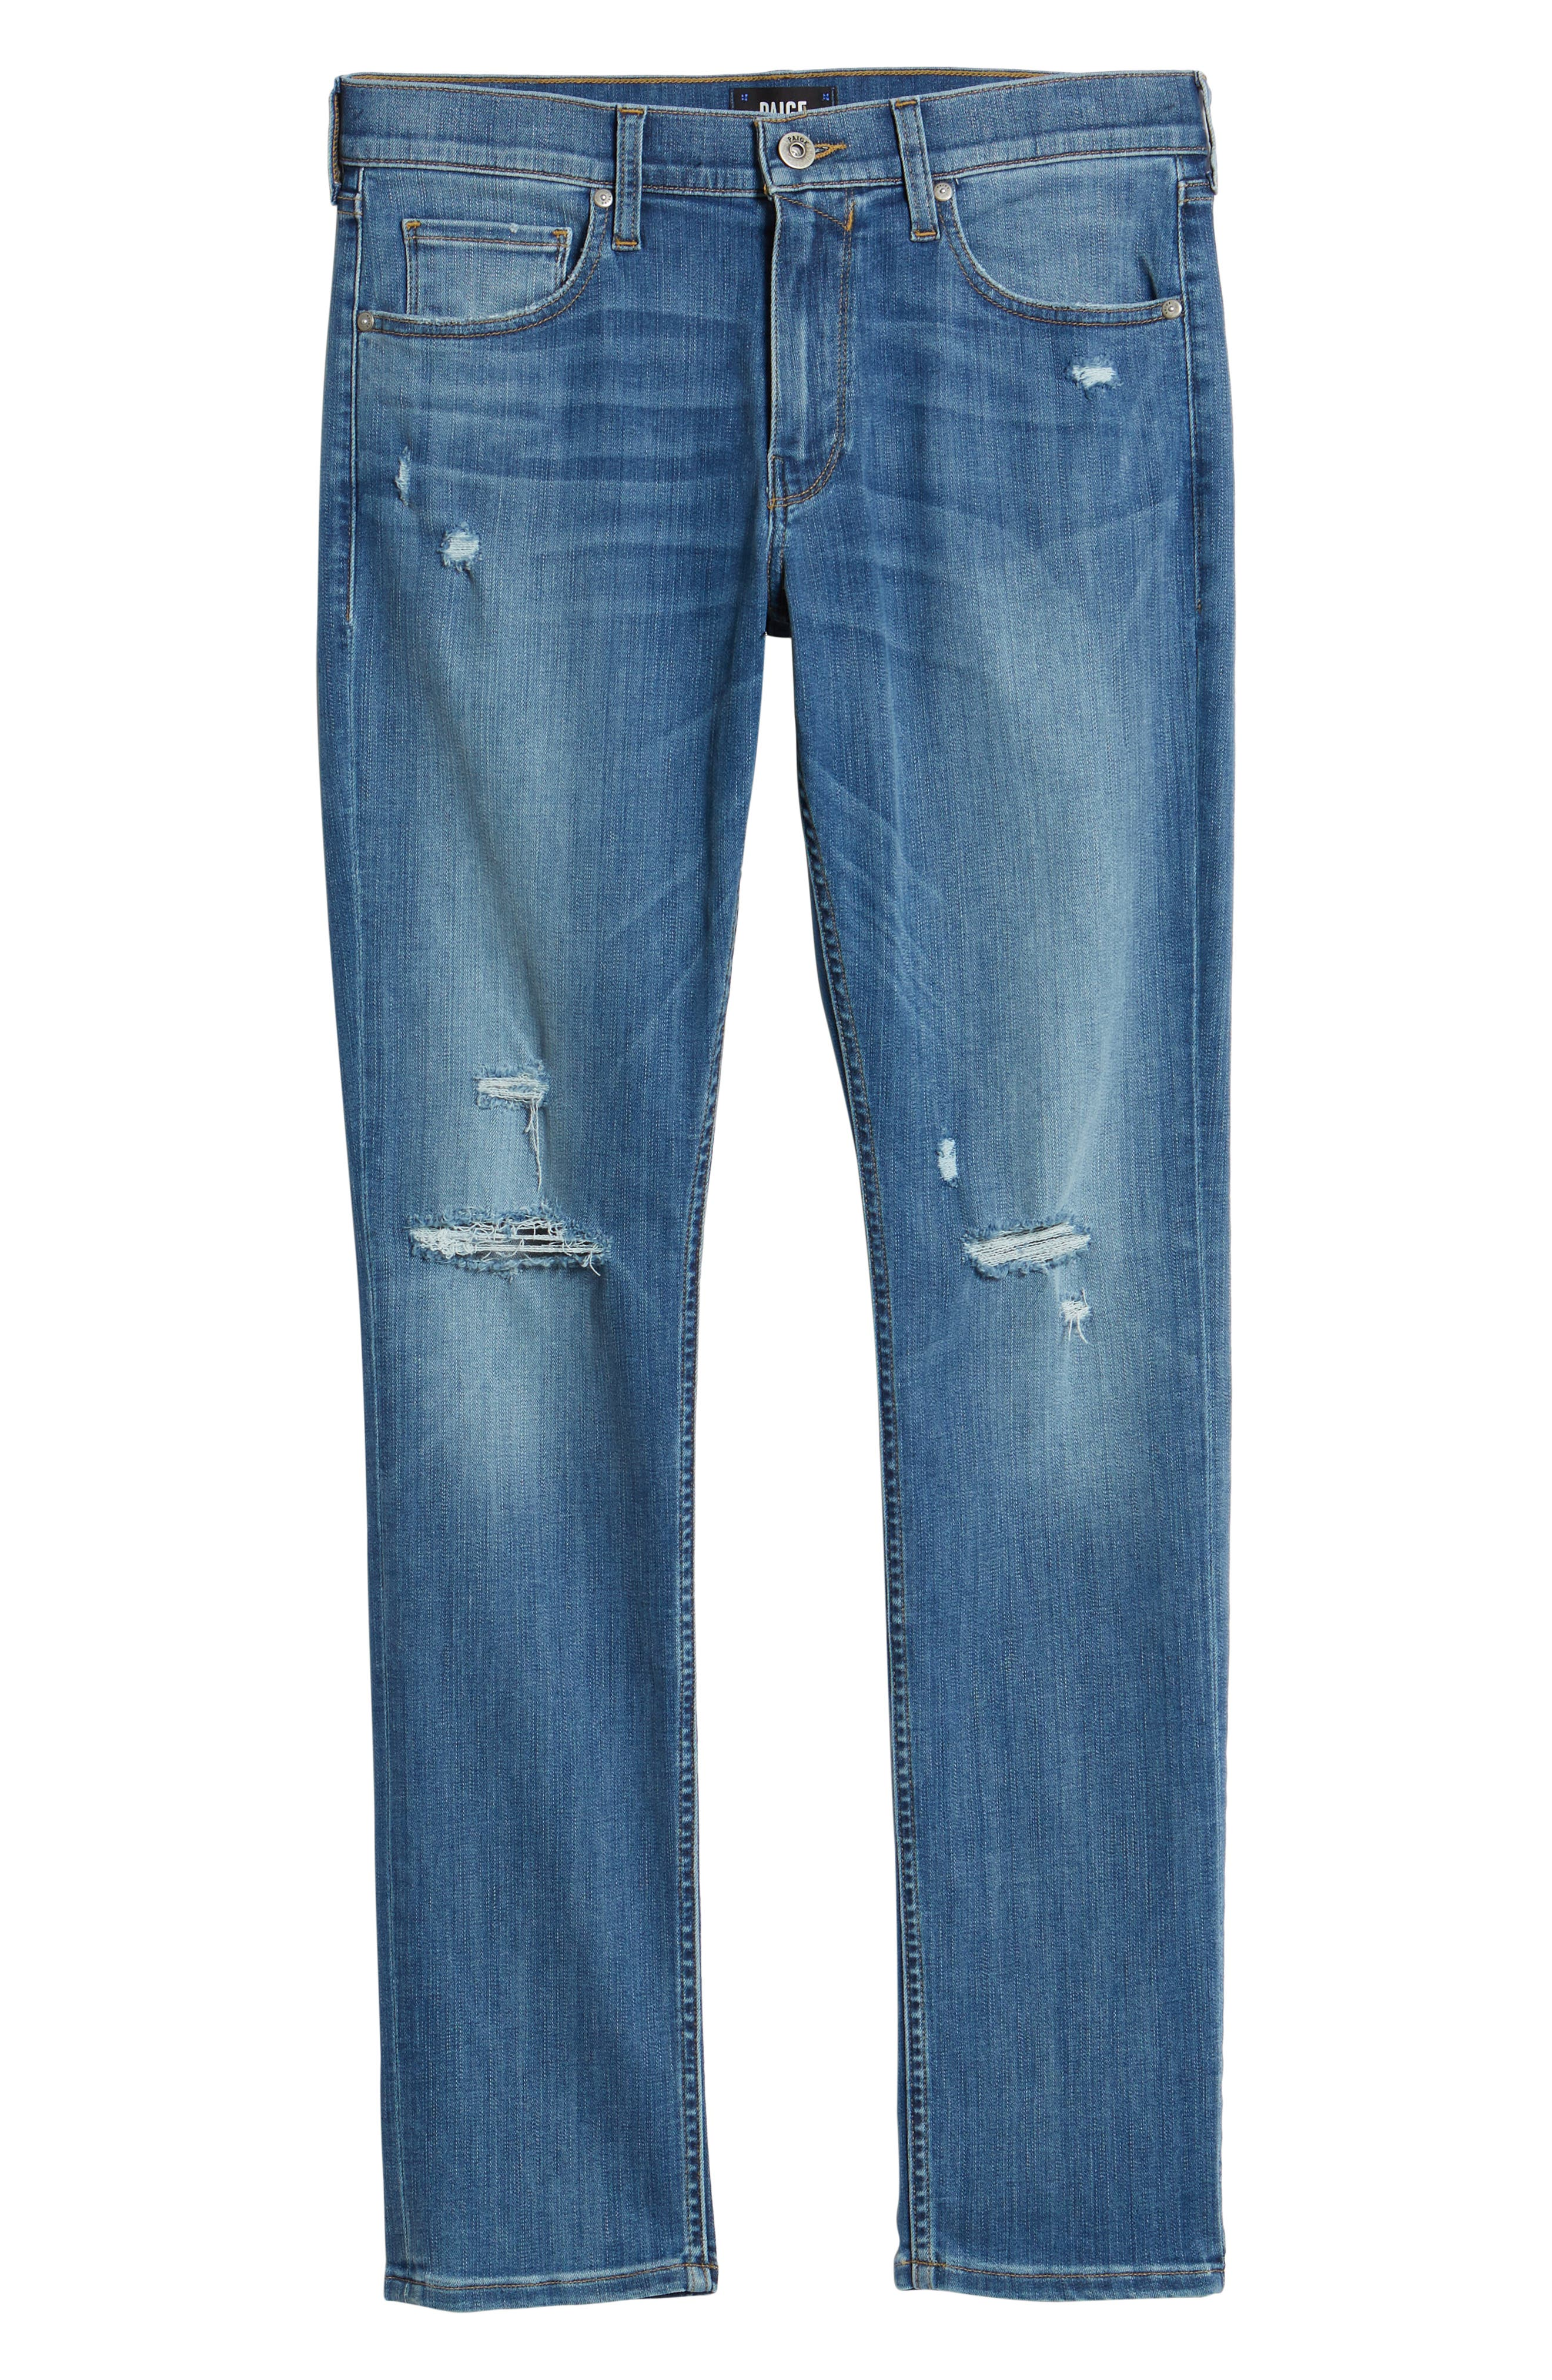 Federal Slim Straight Fit Jeans,                             Alternate thumbnail 6, color,                             660